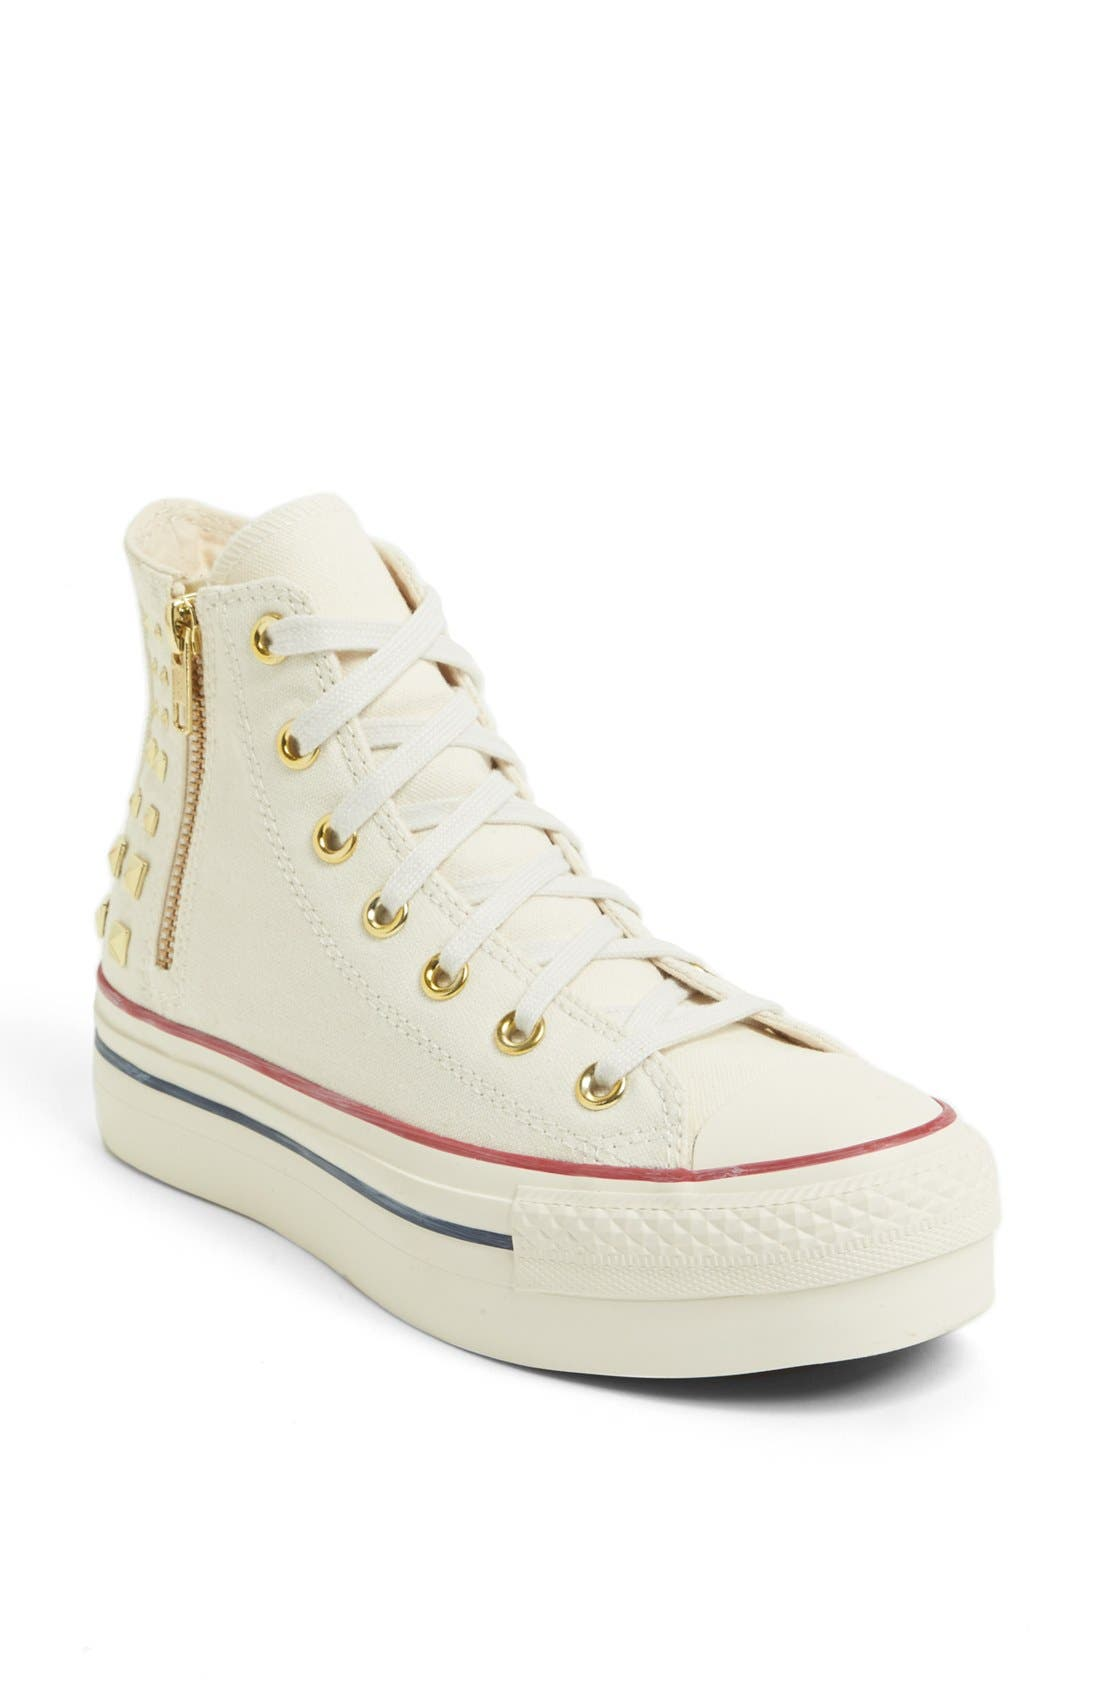 Main Image - Converse Chuck Taylor® All Star® Platform High Top Sneaker (Women)